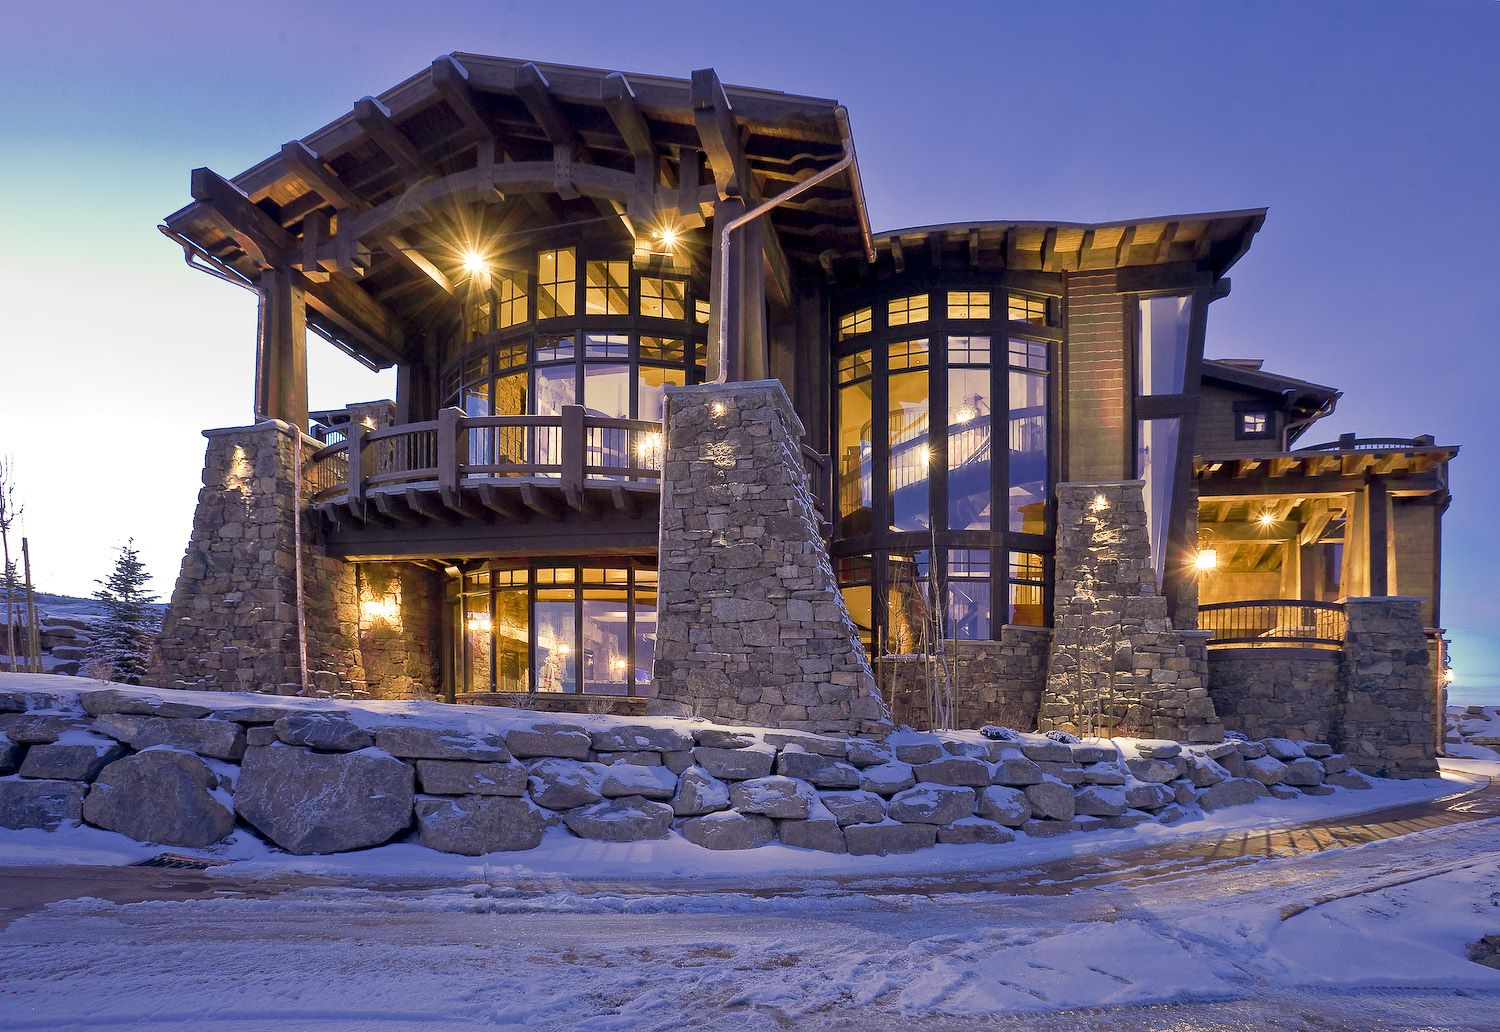 The Dream Home An Aptly Named Villa For Rent In Deer Valley Utah This Will Never Happen Me But Supposing I Ever Won Lottery Windows